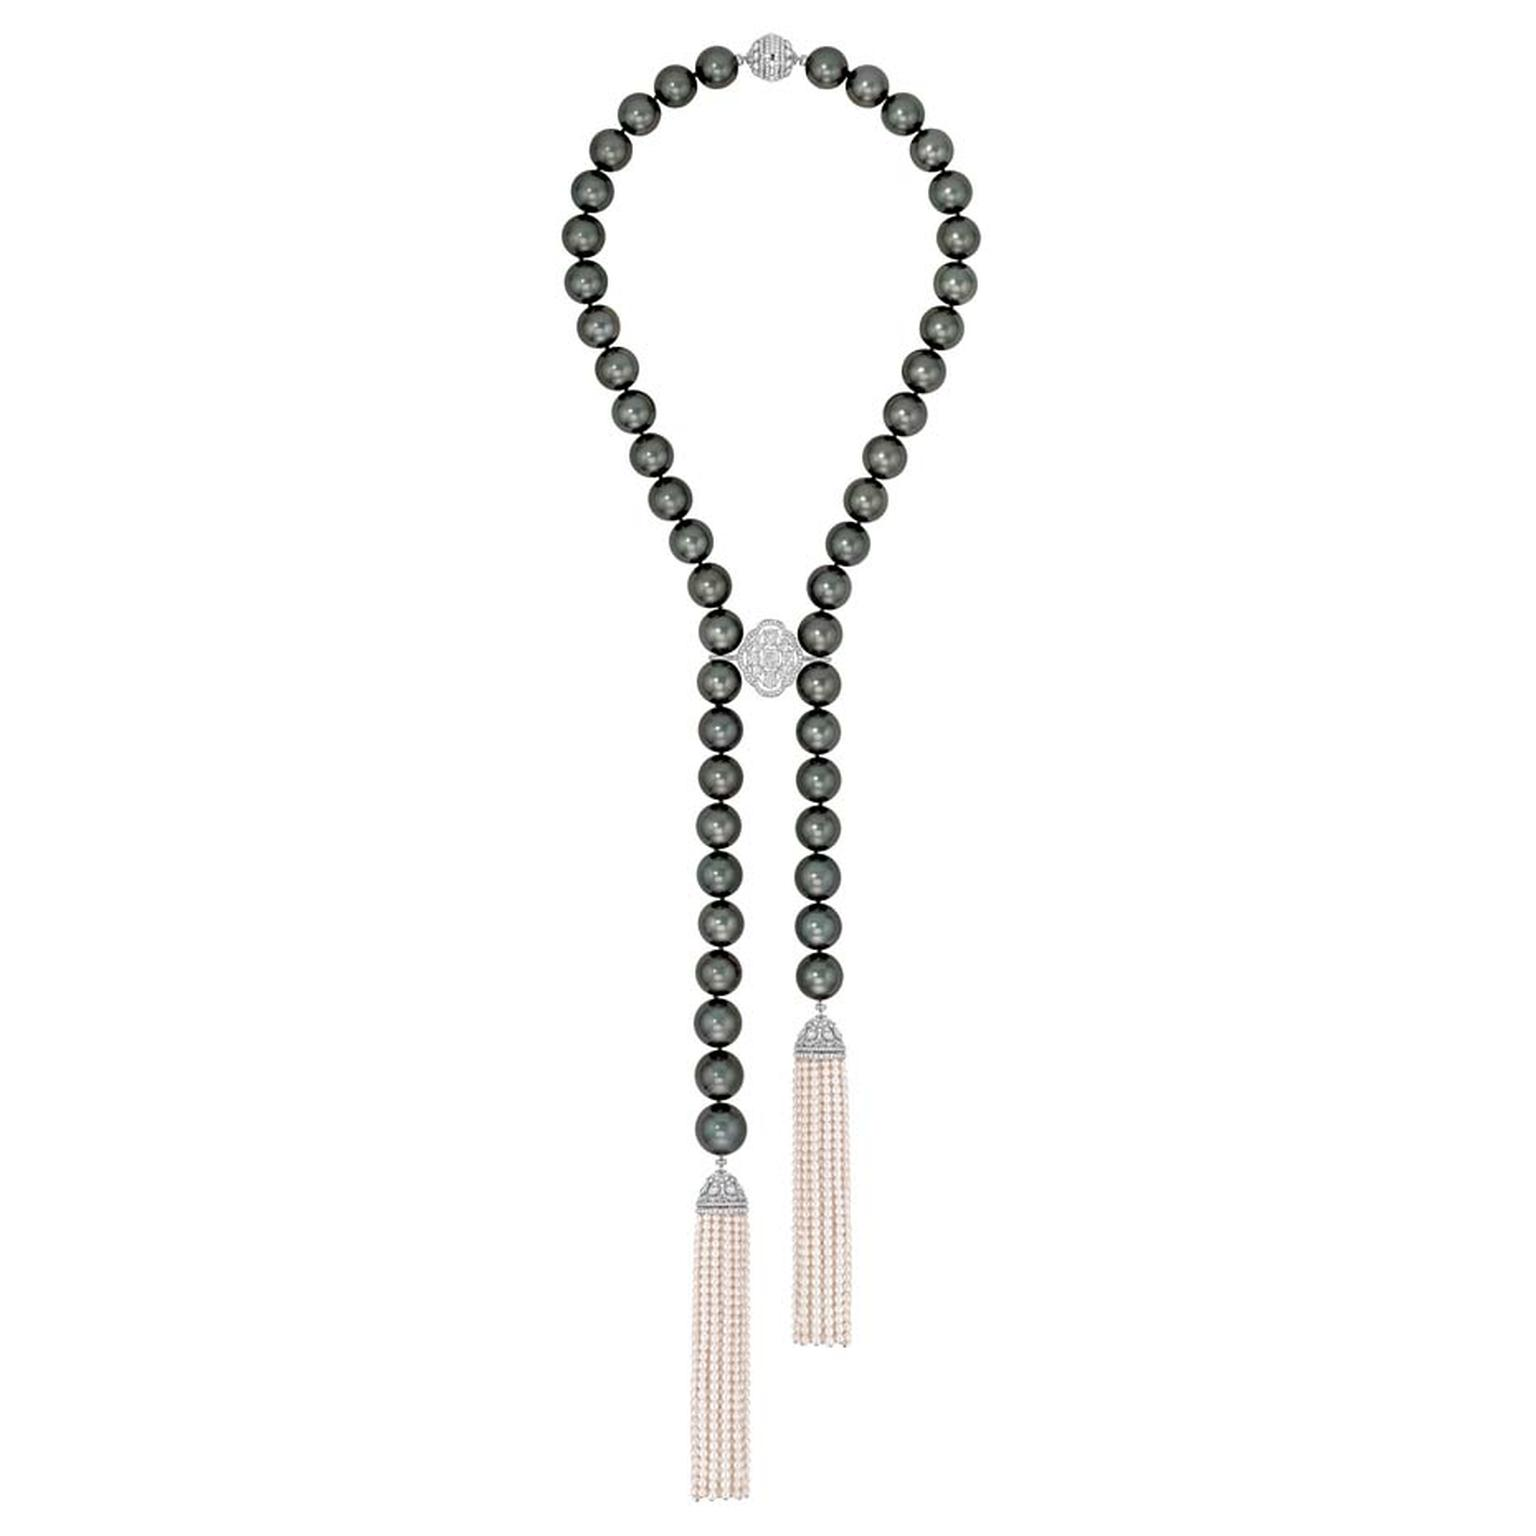 Chanel Perles de Nuit necklace in white gold, from the Perles de Chanel collection, set with brilliant-, cushion-, pear- and oval-cut diamonds, 47 Tahitian cultured pearls and 1,362 Japanese cultured pearls.